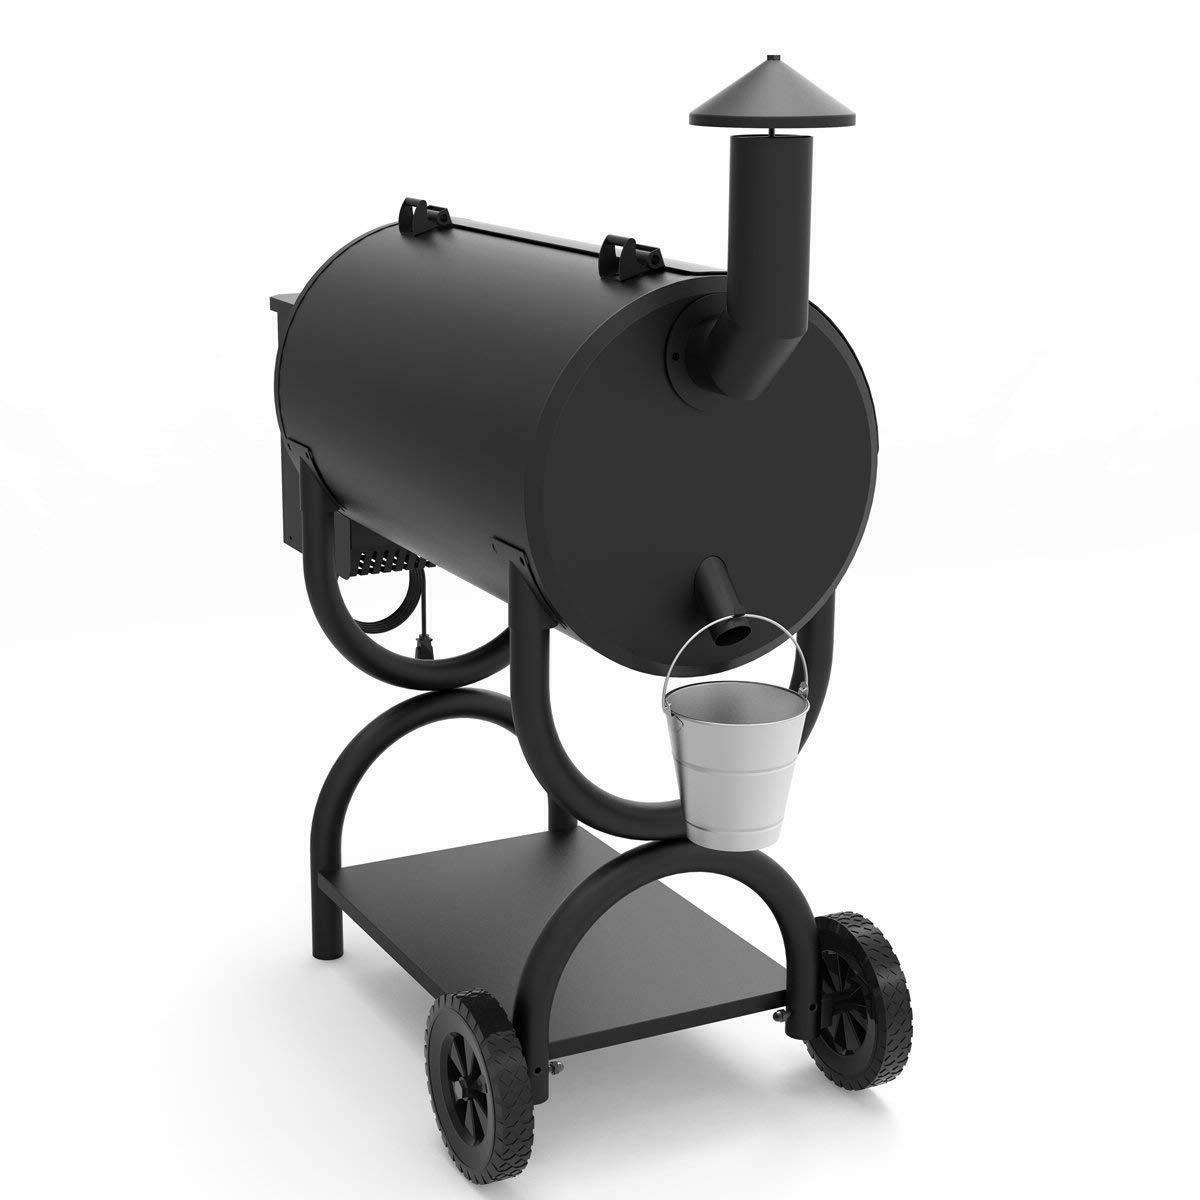 Z Grills Wood Grill Smoker Control with Cover